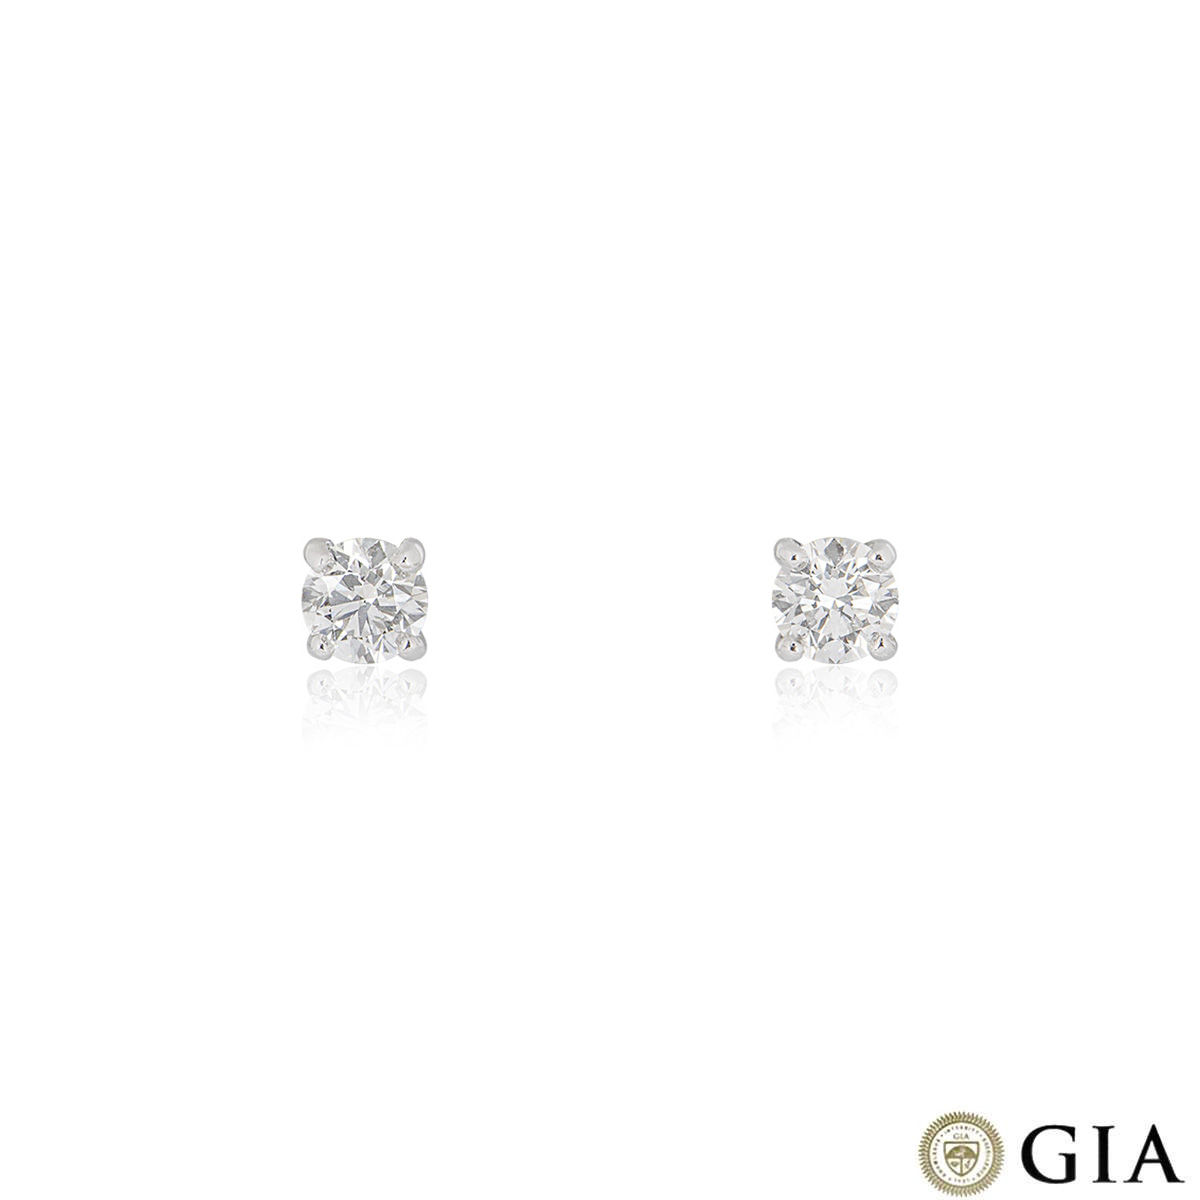 White Gold Round Brilliant Cut Diamond Earrings 1.20ct TDW